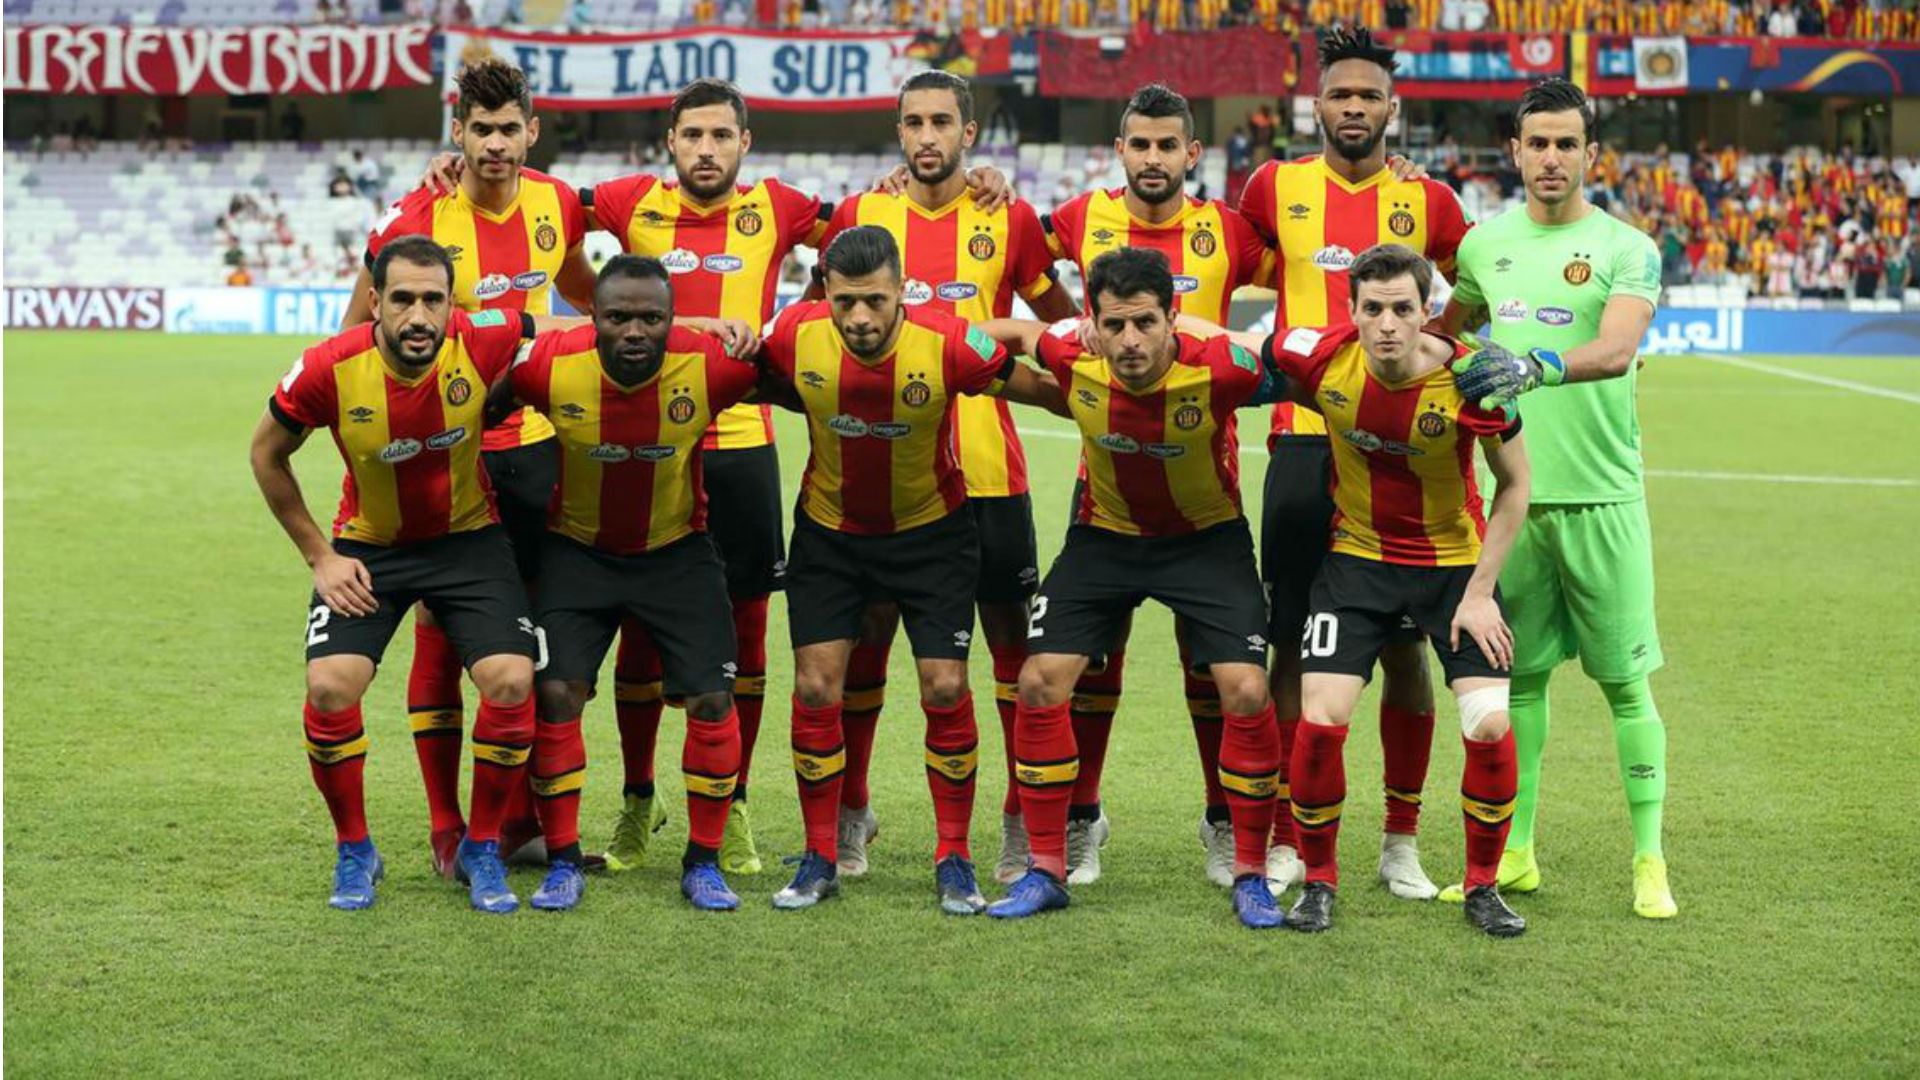 Esperance win the CAF Champions League title after final abandoned over VAR